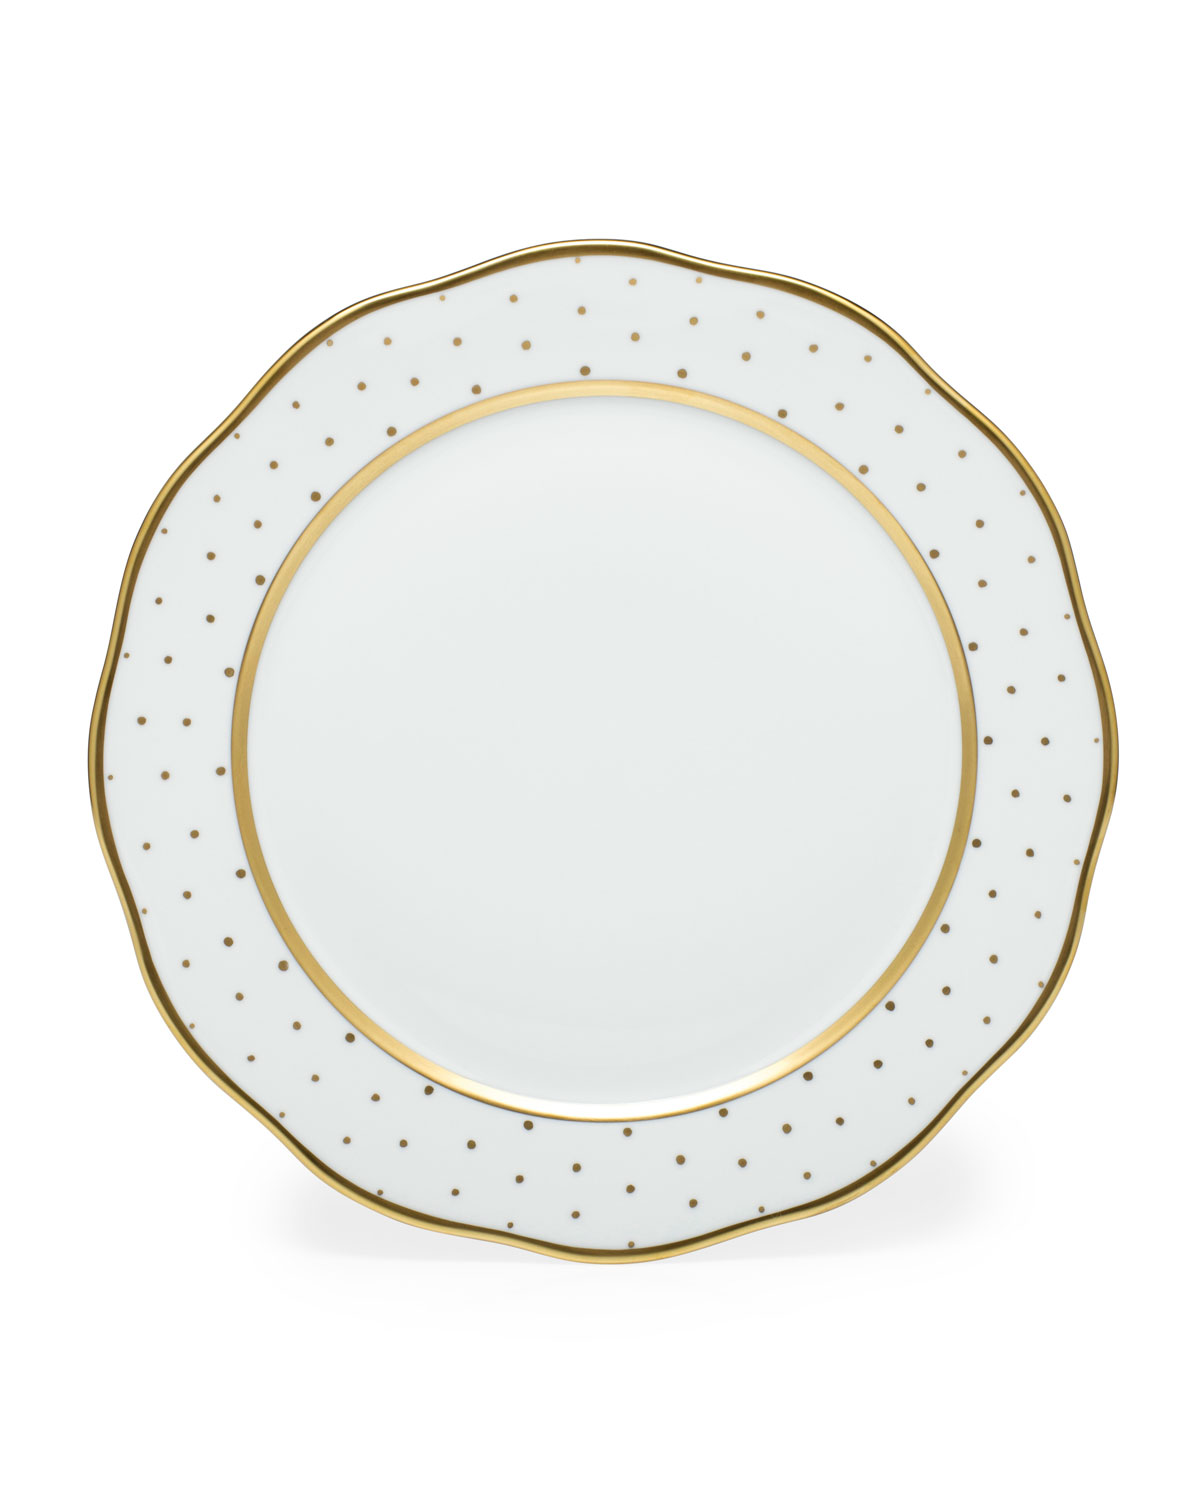 Herend Dinnerwares CONNECT THE DOTS CHARGER PLATE